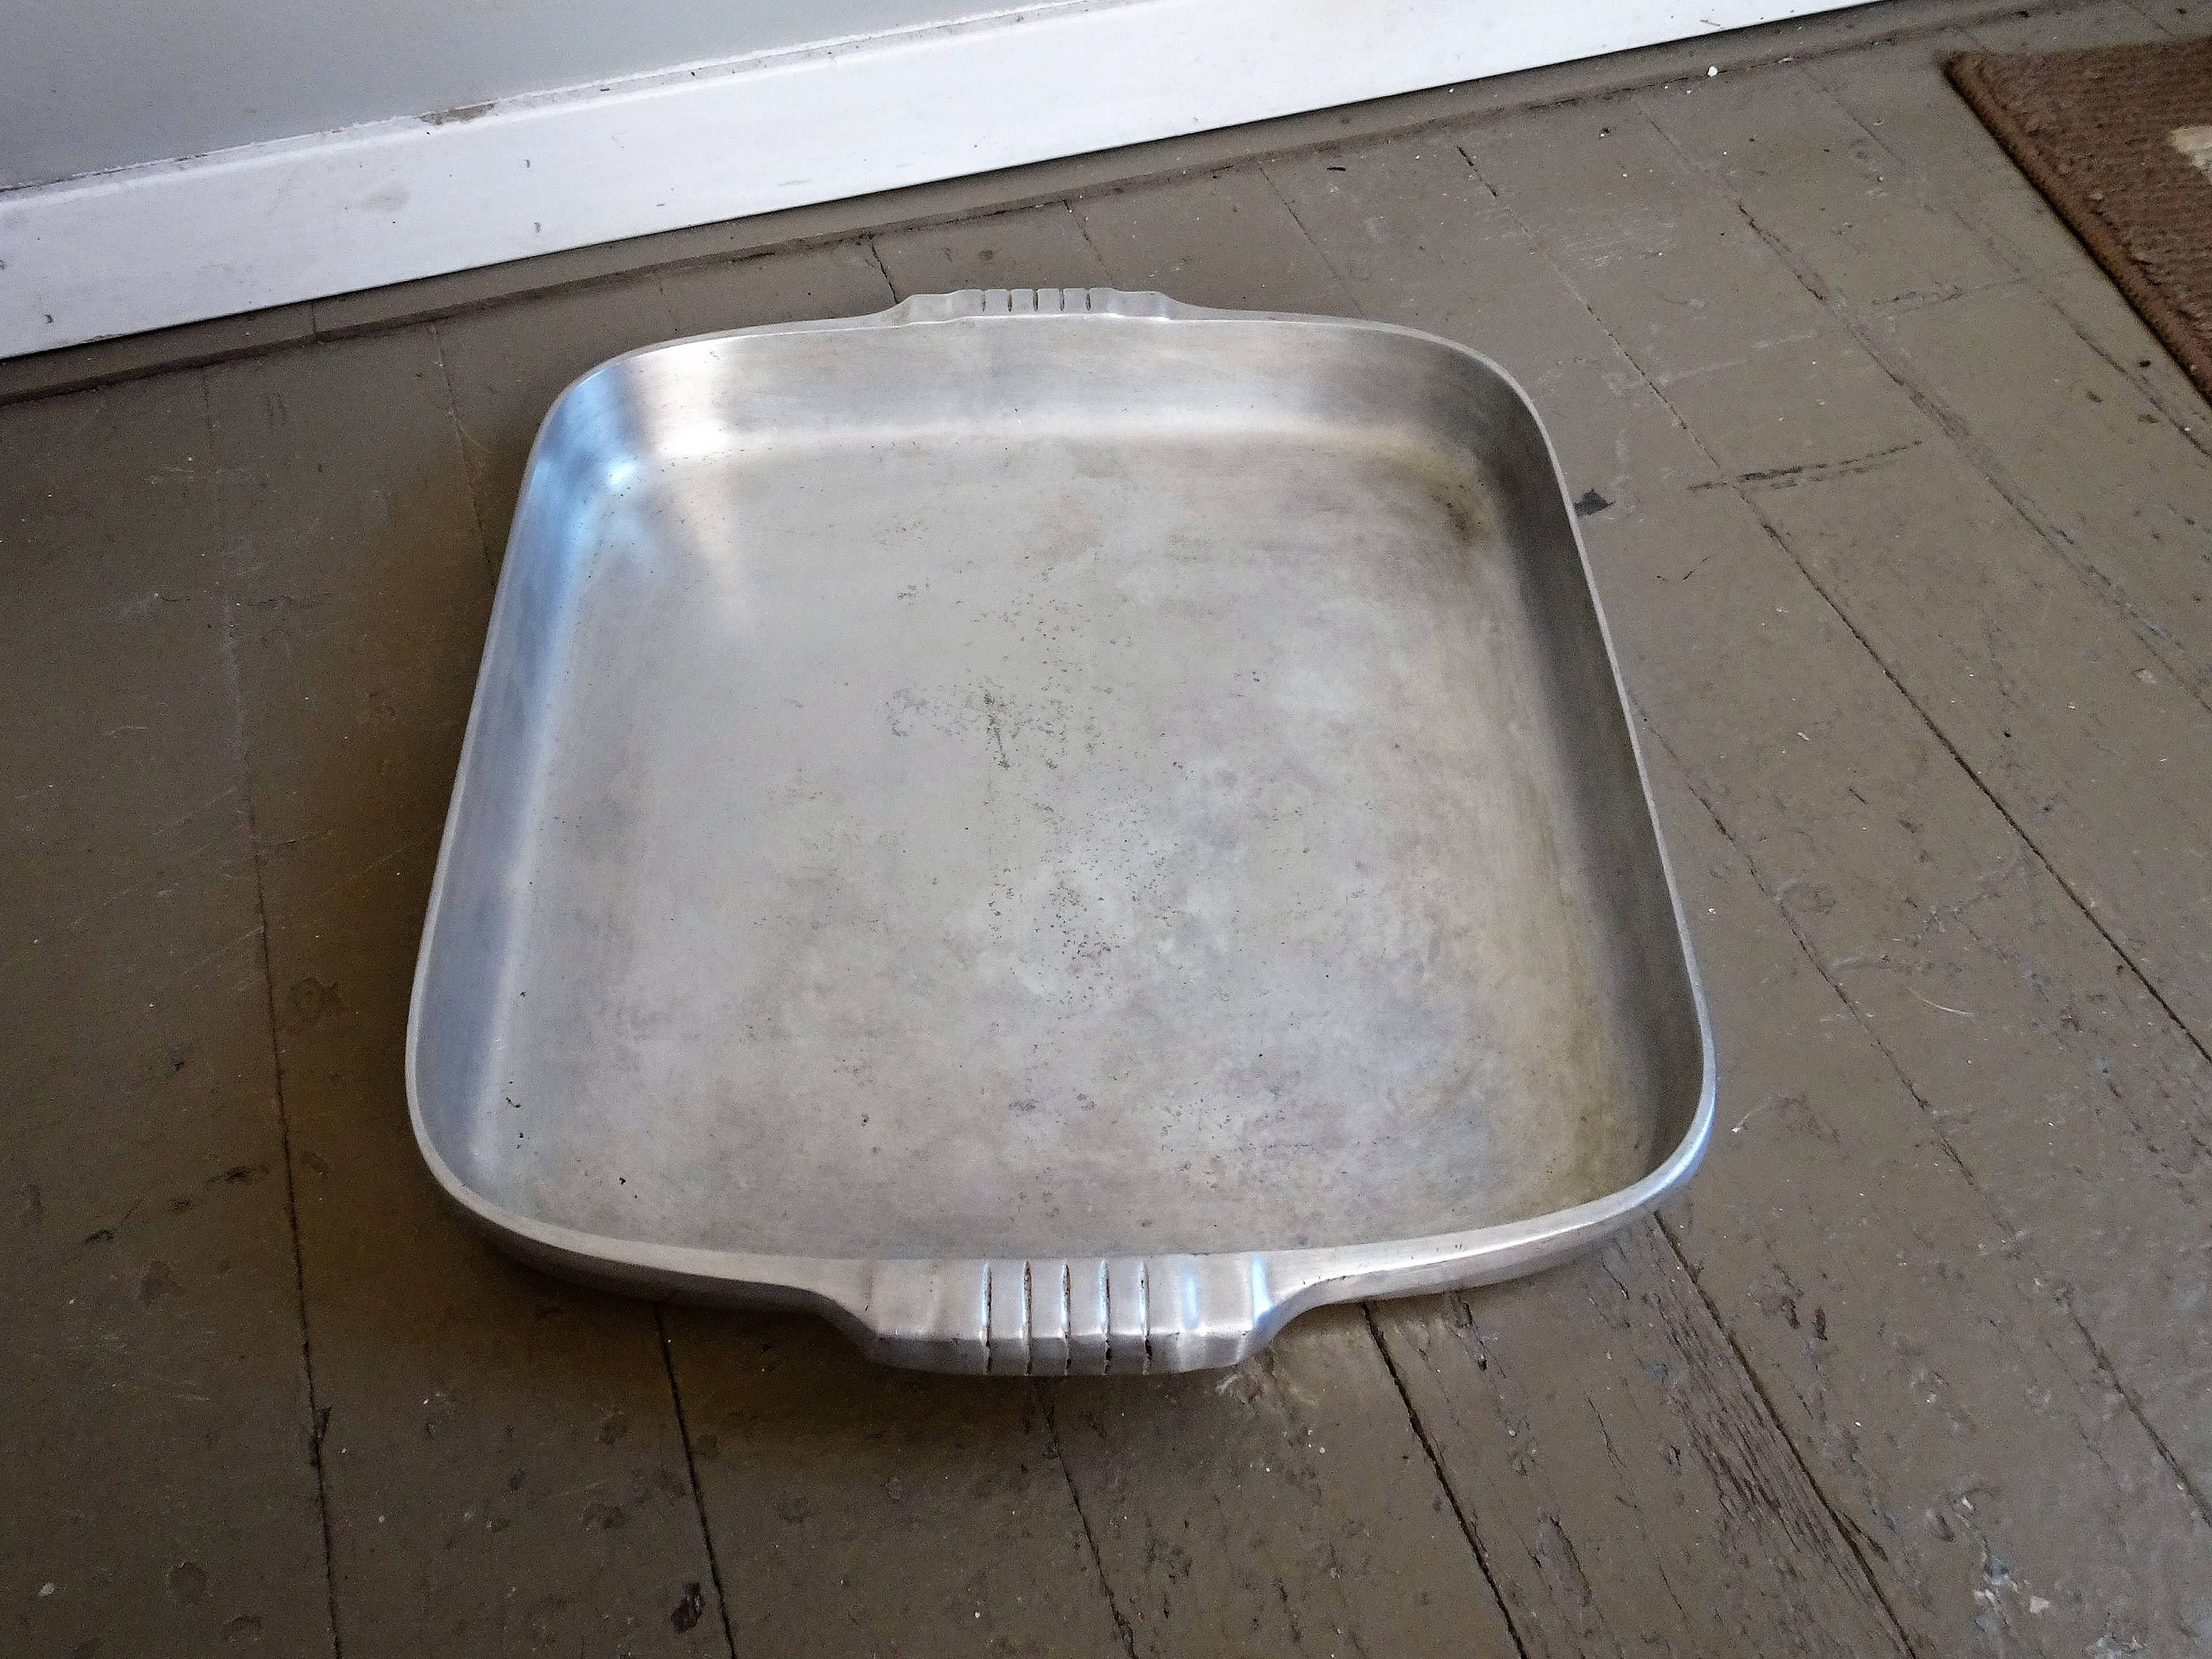 Vintage wagner ware magnalite sidney roasting bake pan 4007 m farm decor aluminum cook ware vintage cook ware by rue88market on etsy